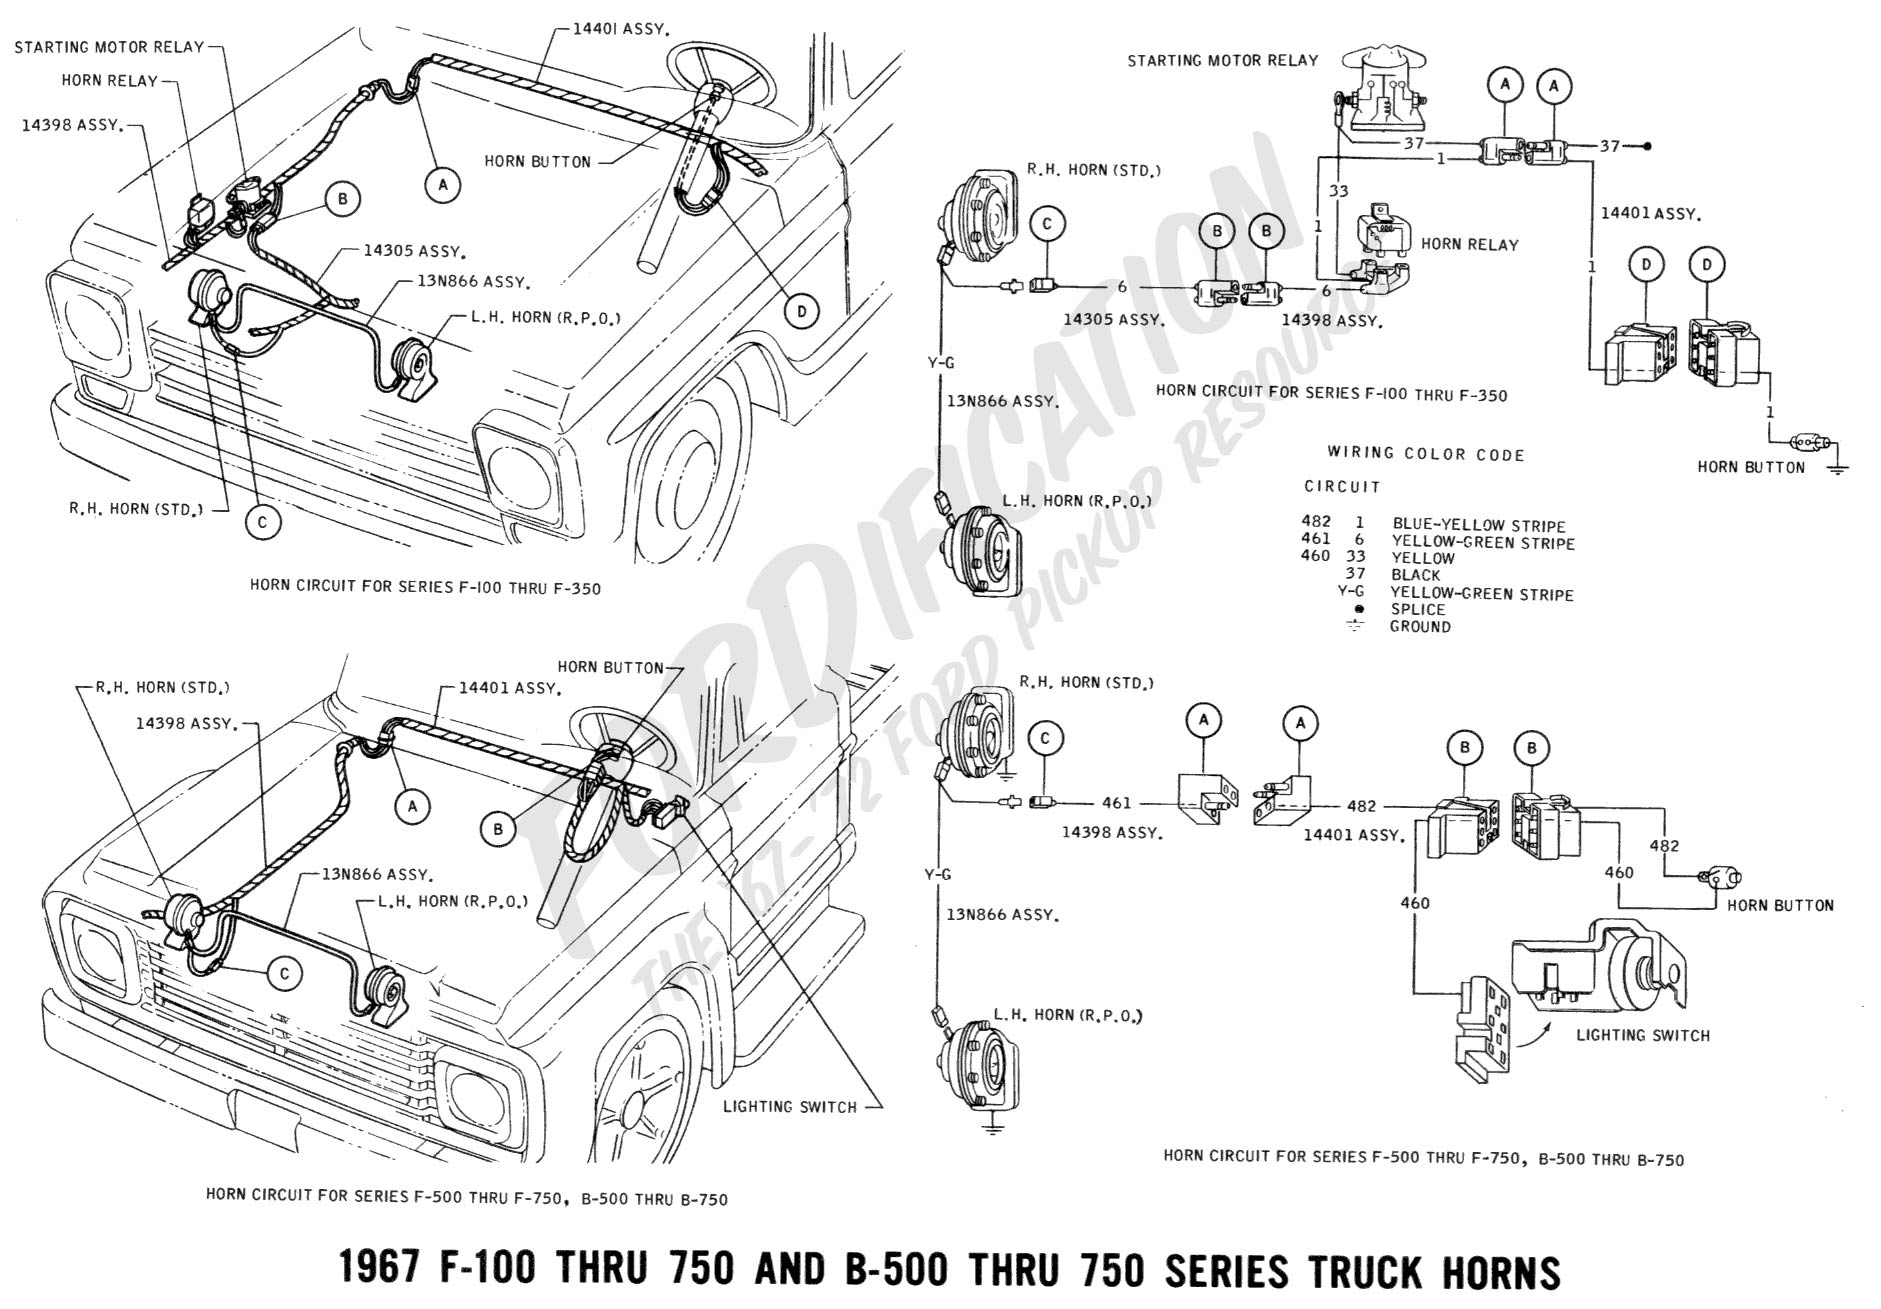 Renault Clio 2003 Fuse Box Diagram also Fog L  Wiring Diagram besides 1966 Mustang Wiring Diagrams additionally 1968 Mustang Wiring Diagram Vacuum Schematics in addition Porsche 911 Fuel Pump Wiring Diagram. on exterior light turn signals and horns